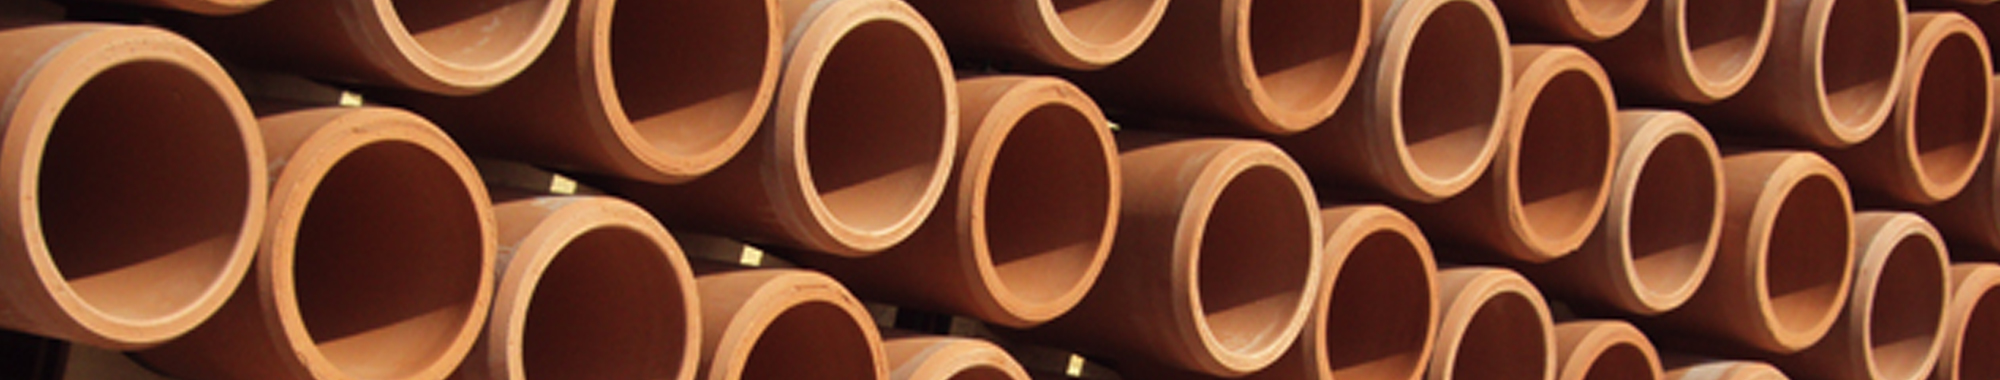 Clay and Plastic Drainage Pipes | Clay and Plastic Drainage